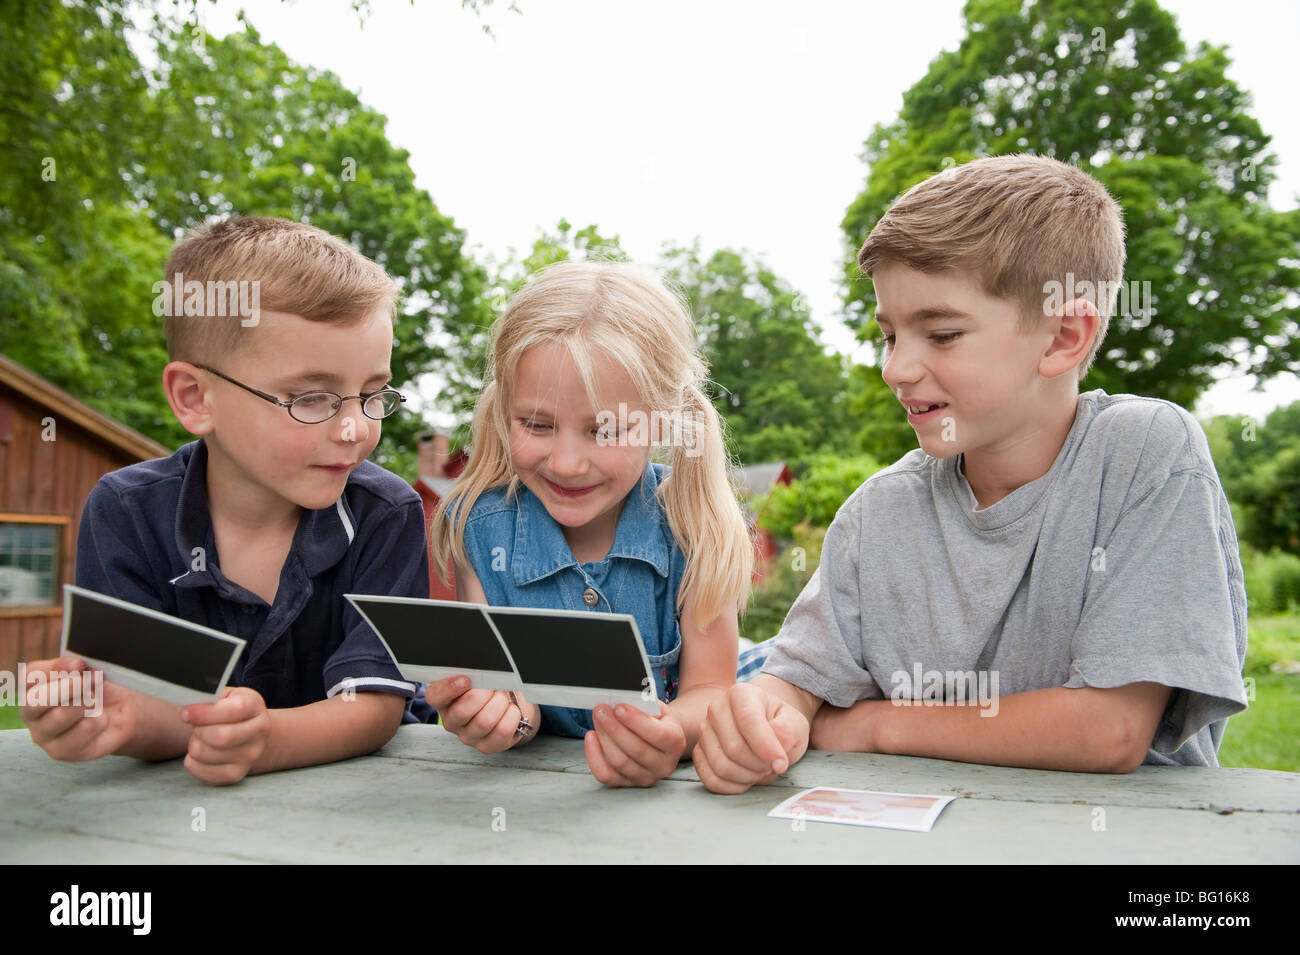 Children looking at photos together - Stock Image